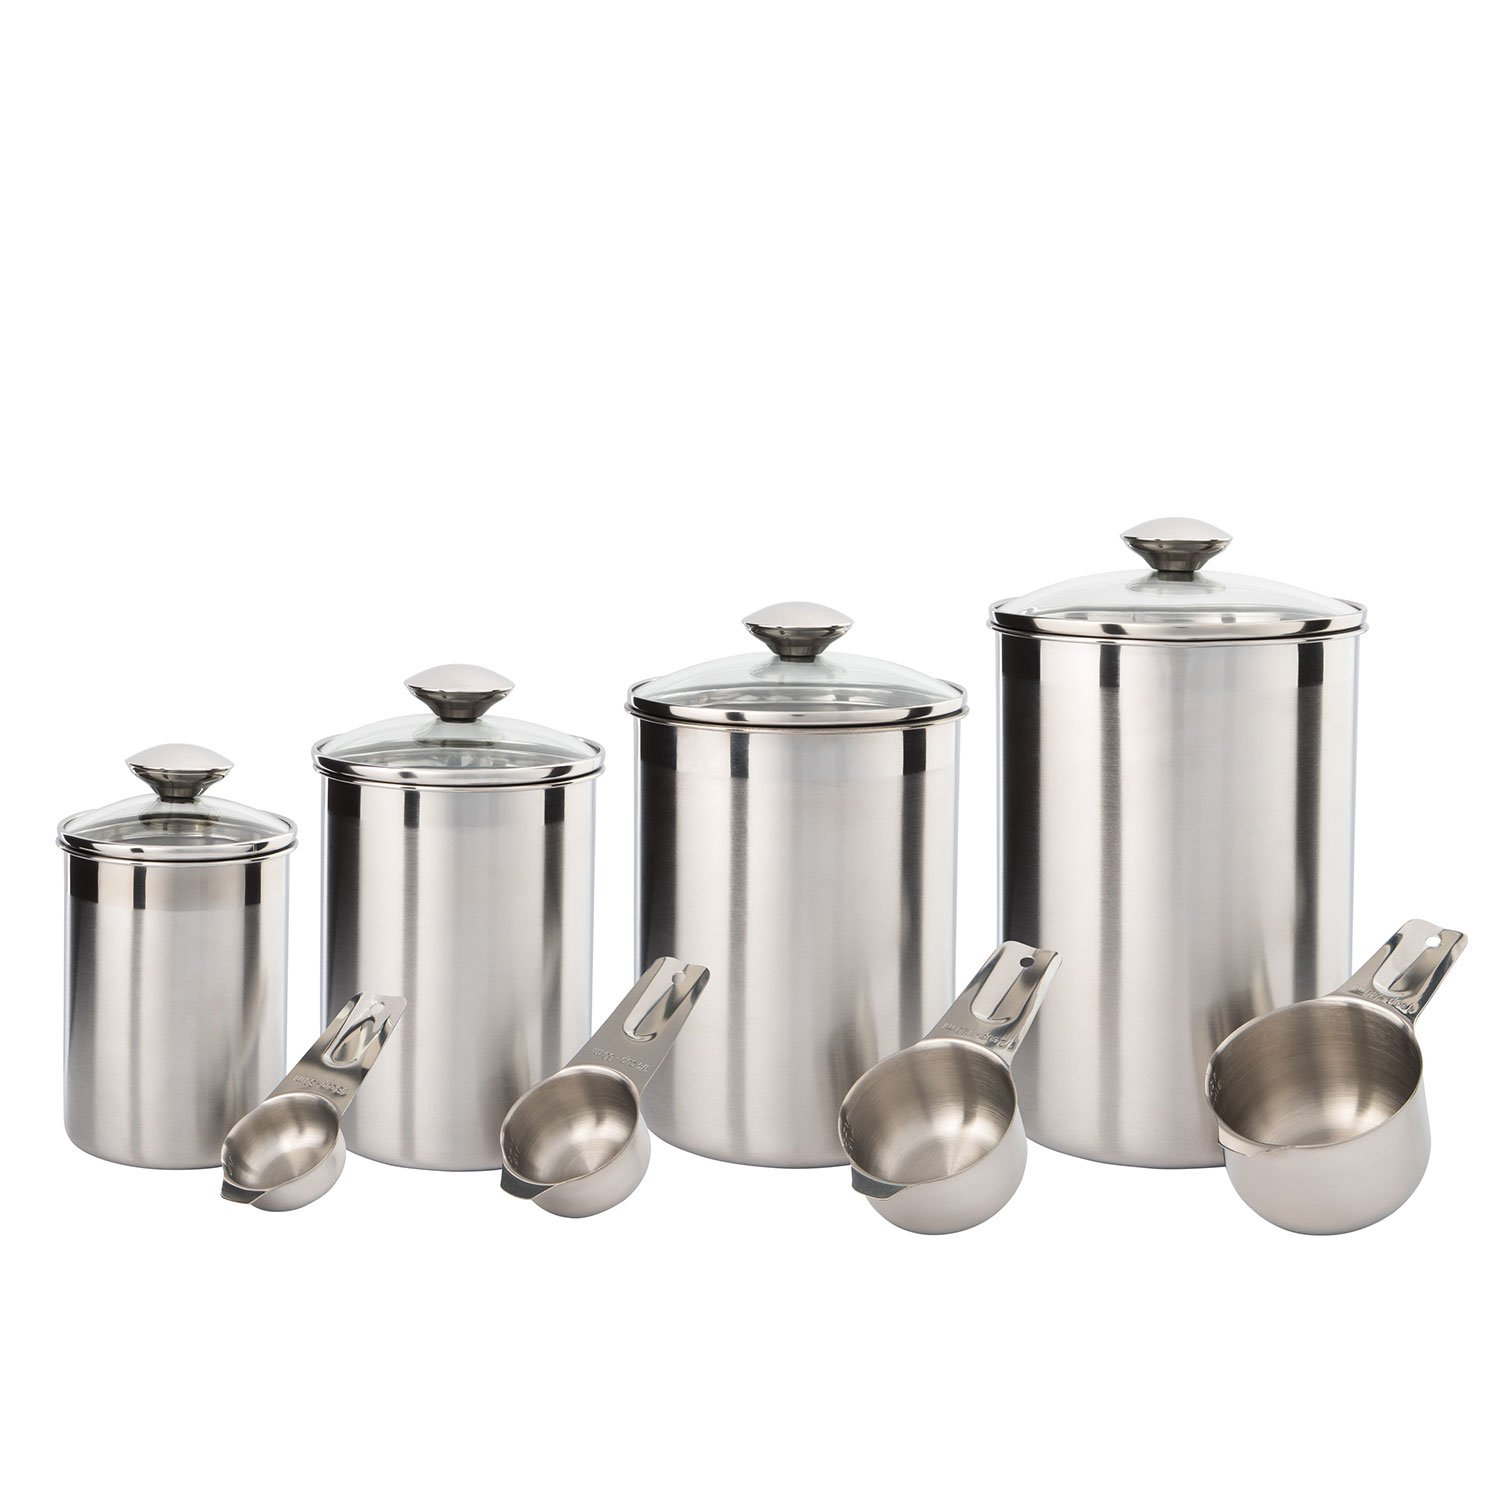 stainless steel canister sets kitchen silveronyx canister set stainless steel beautiful canister sets for kitchen ebay 7715